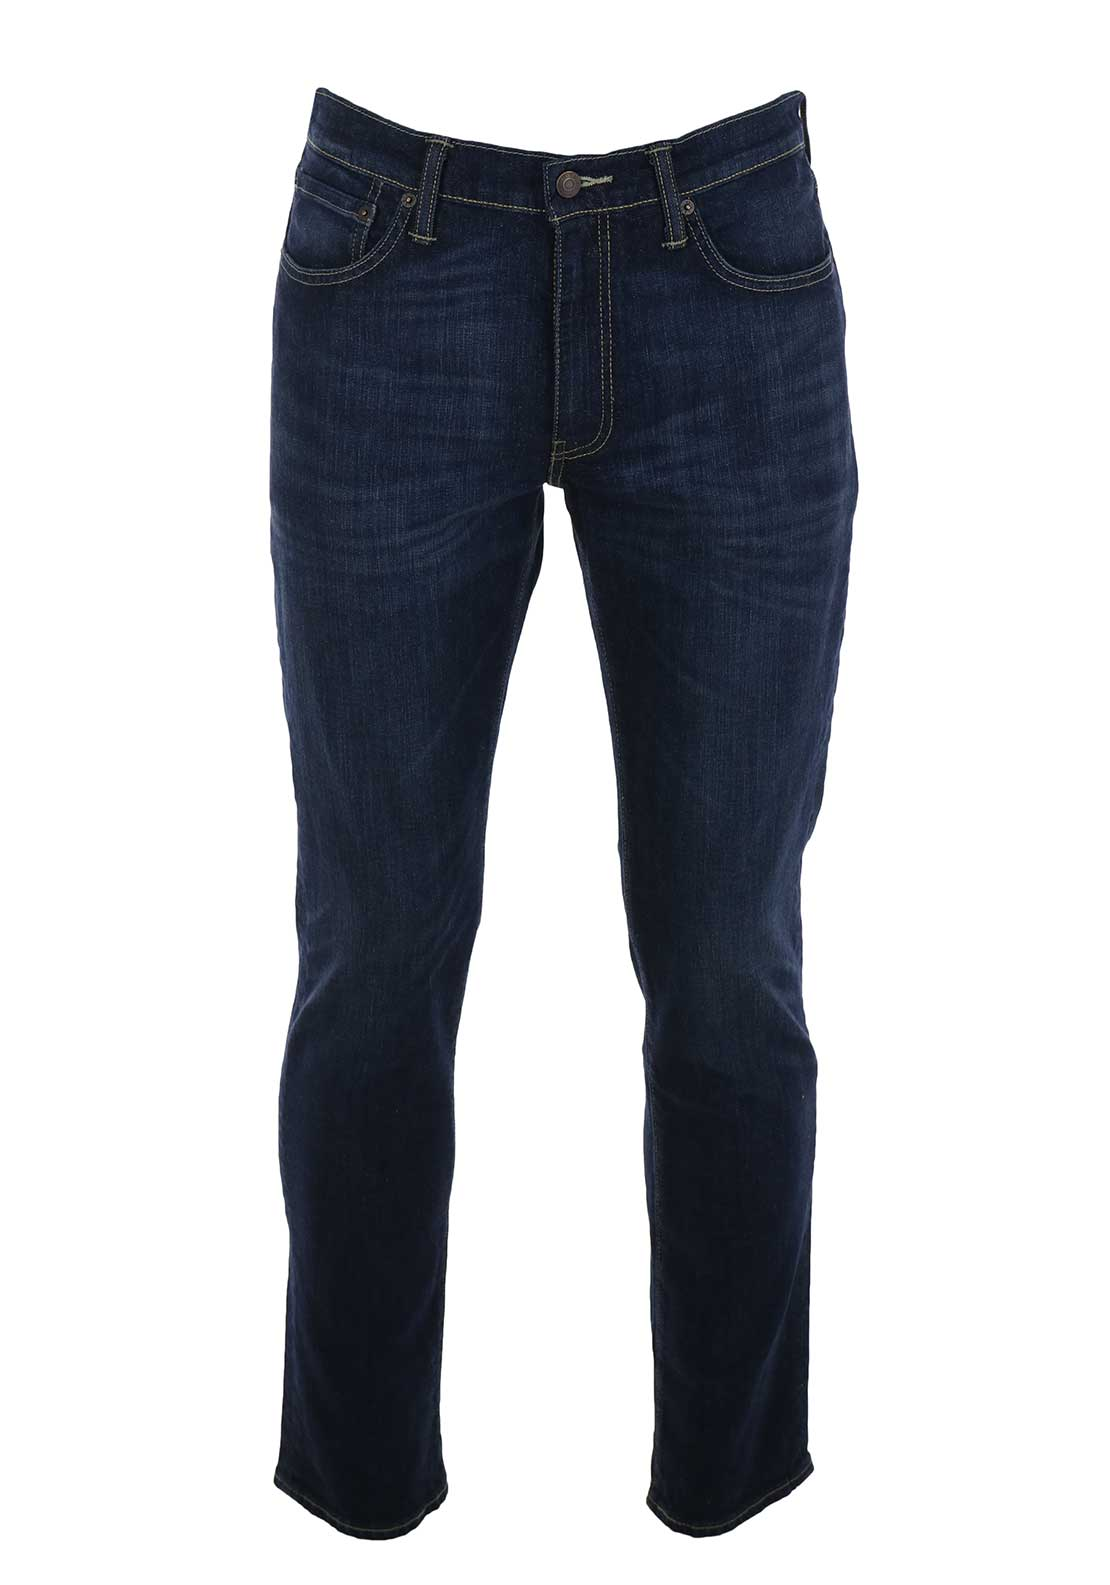 Levis Mens Slim Fit 511 Jeans, Blue